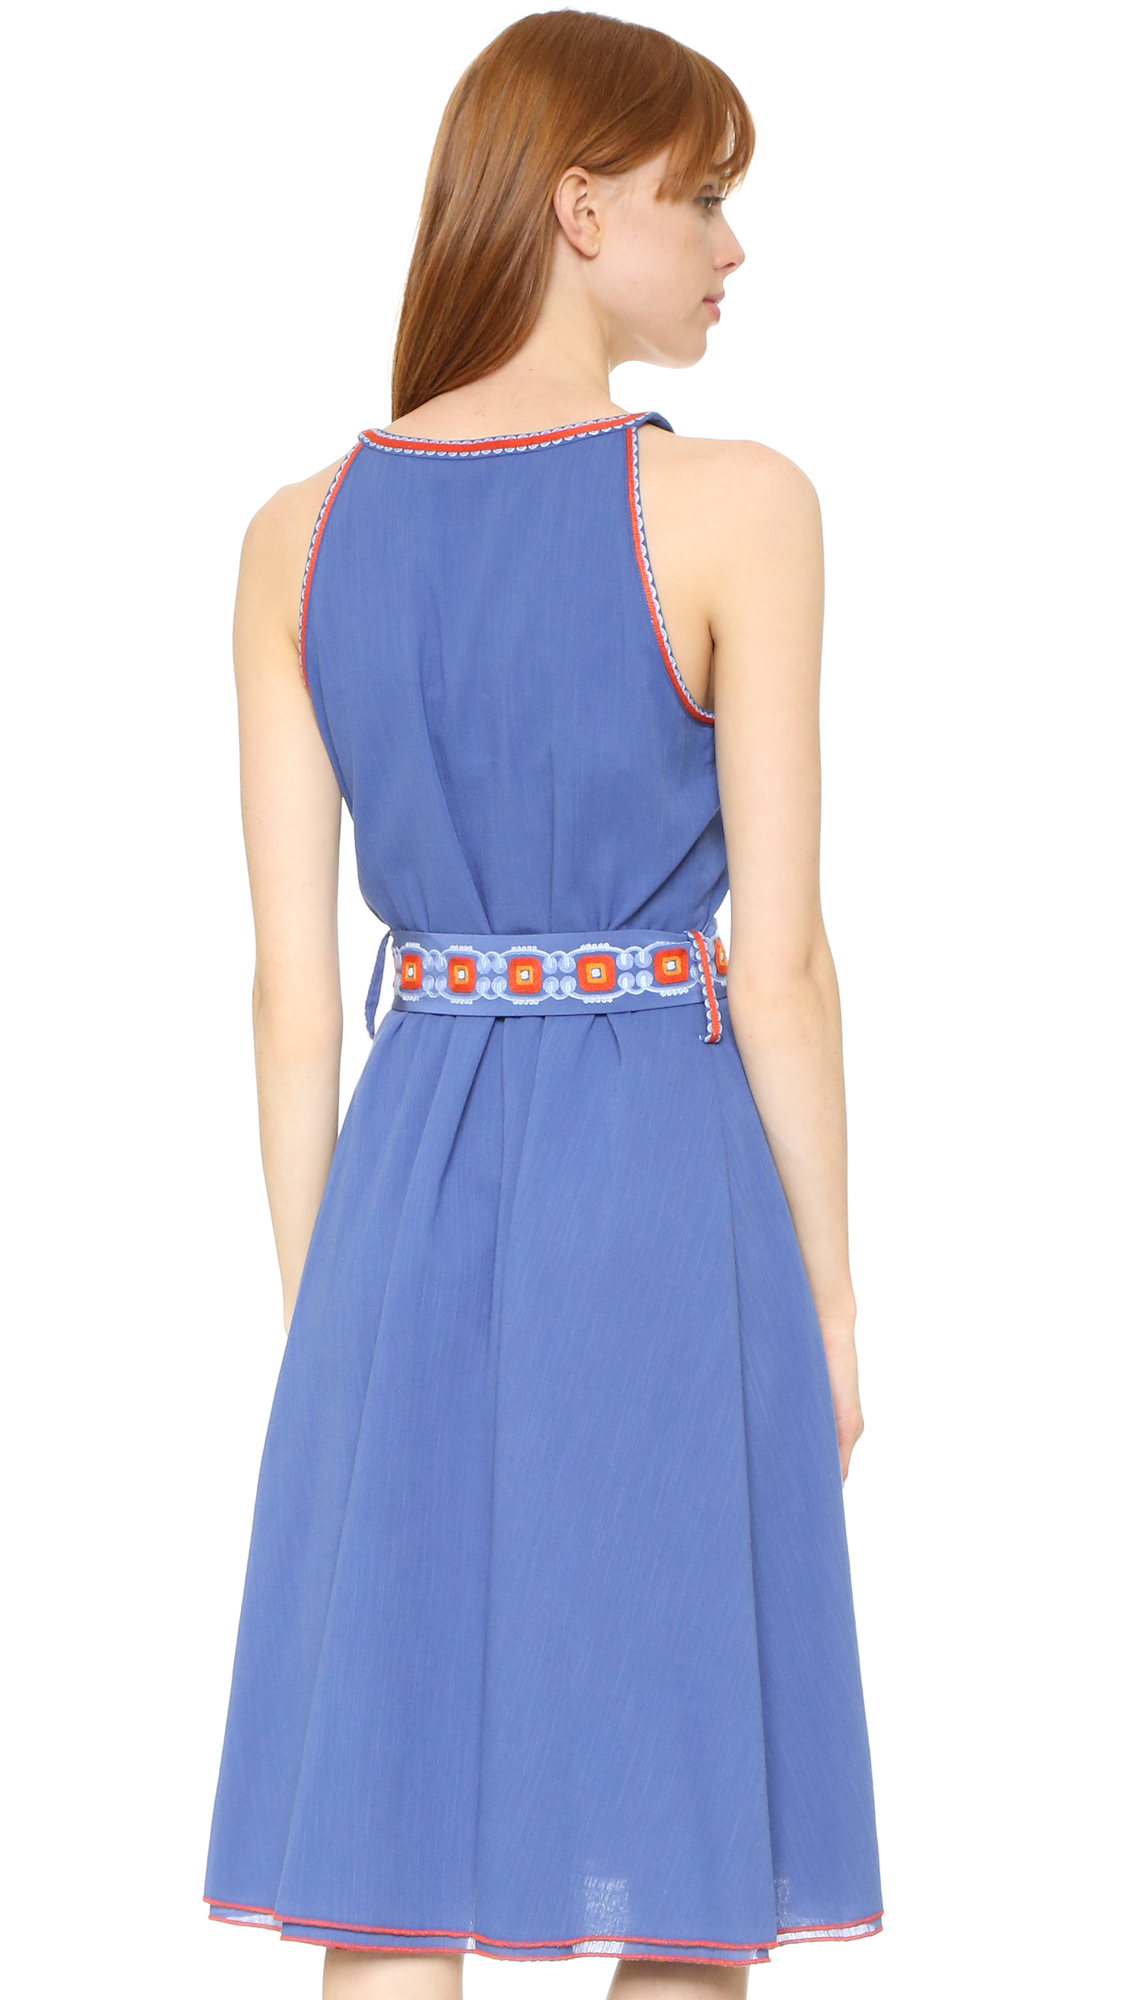 Tory burch savannah dress in blue lyst for Tory burch fashion island